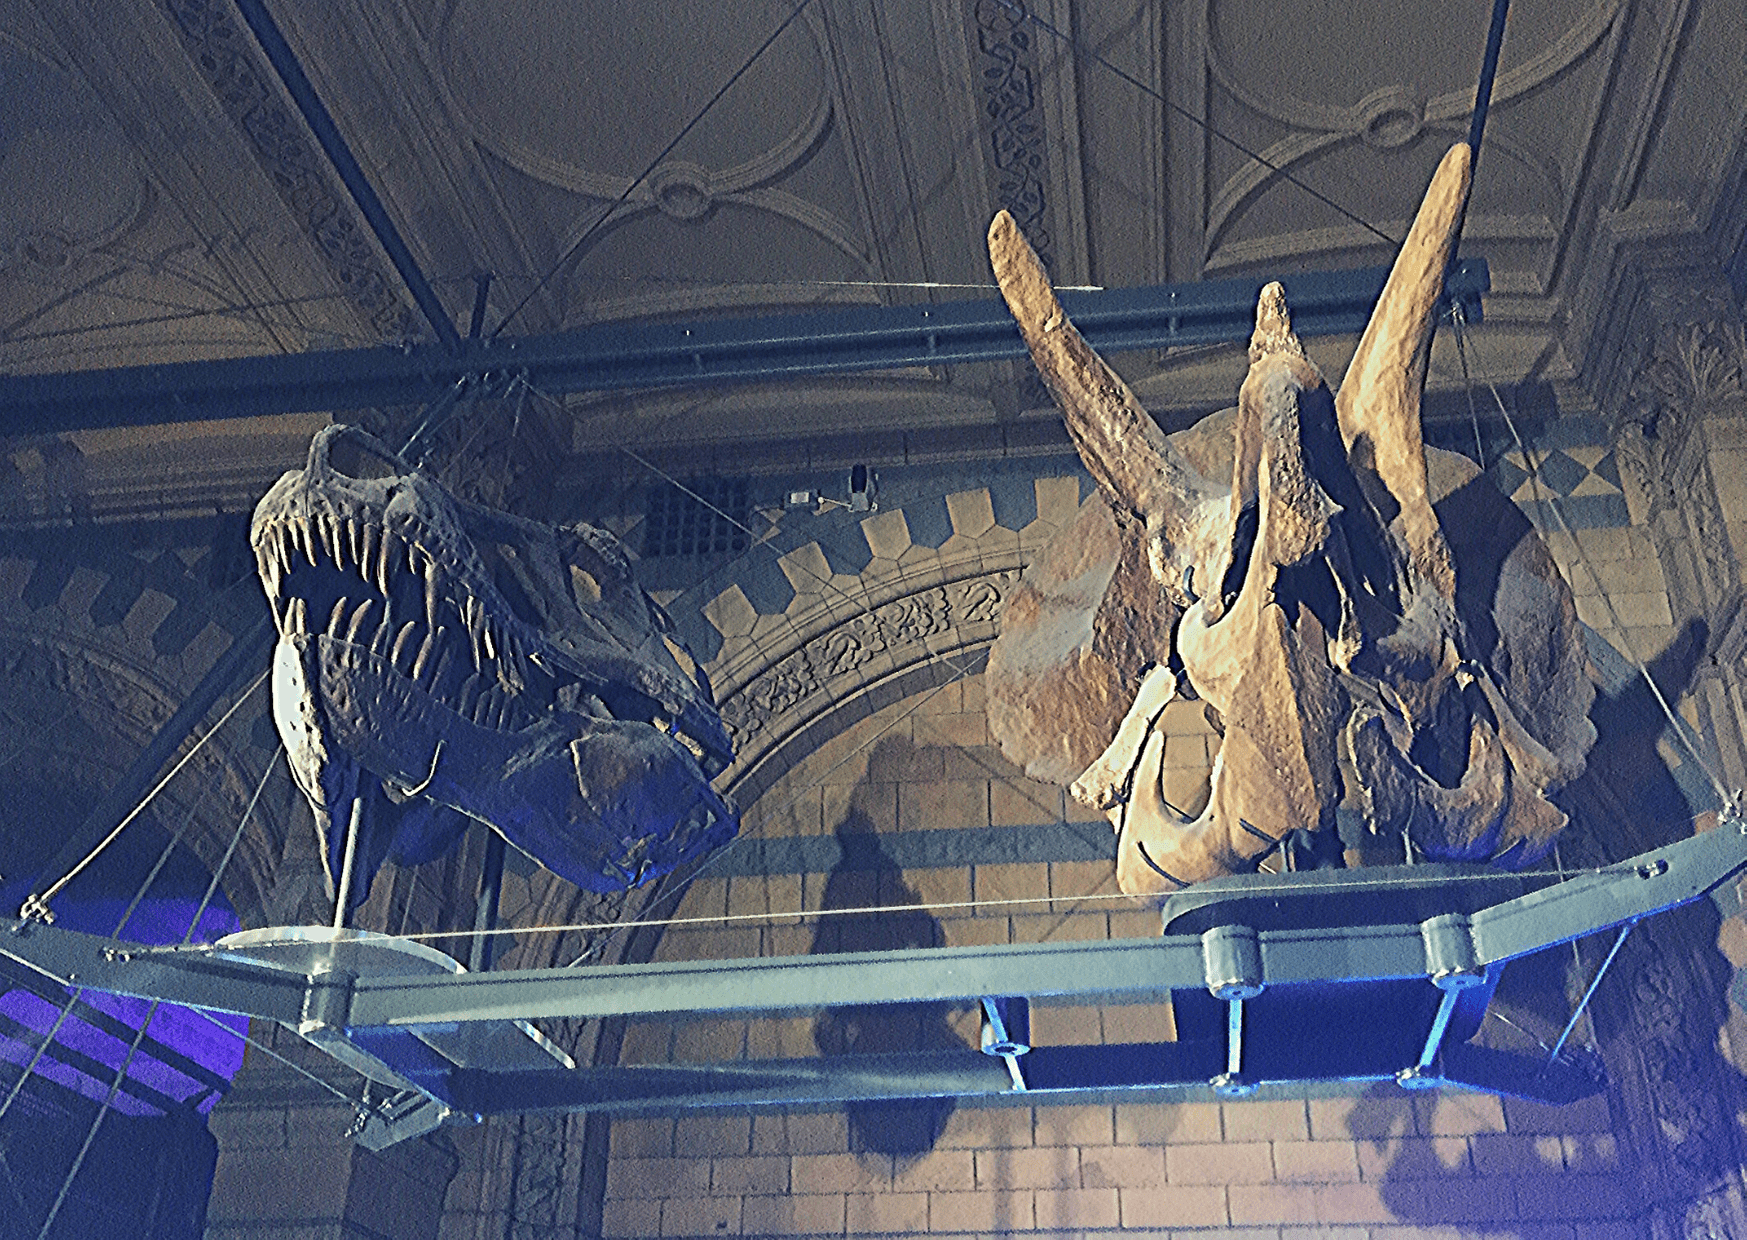 Two the biggest dinosaur skulls: Tyrannosaurus and Triceratops, part of the London's dinosaurs exhibit at the Natural History Museum; What to do in London with a small child